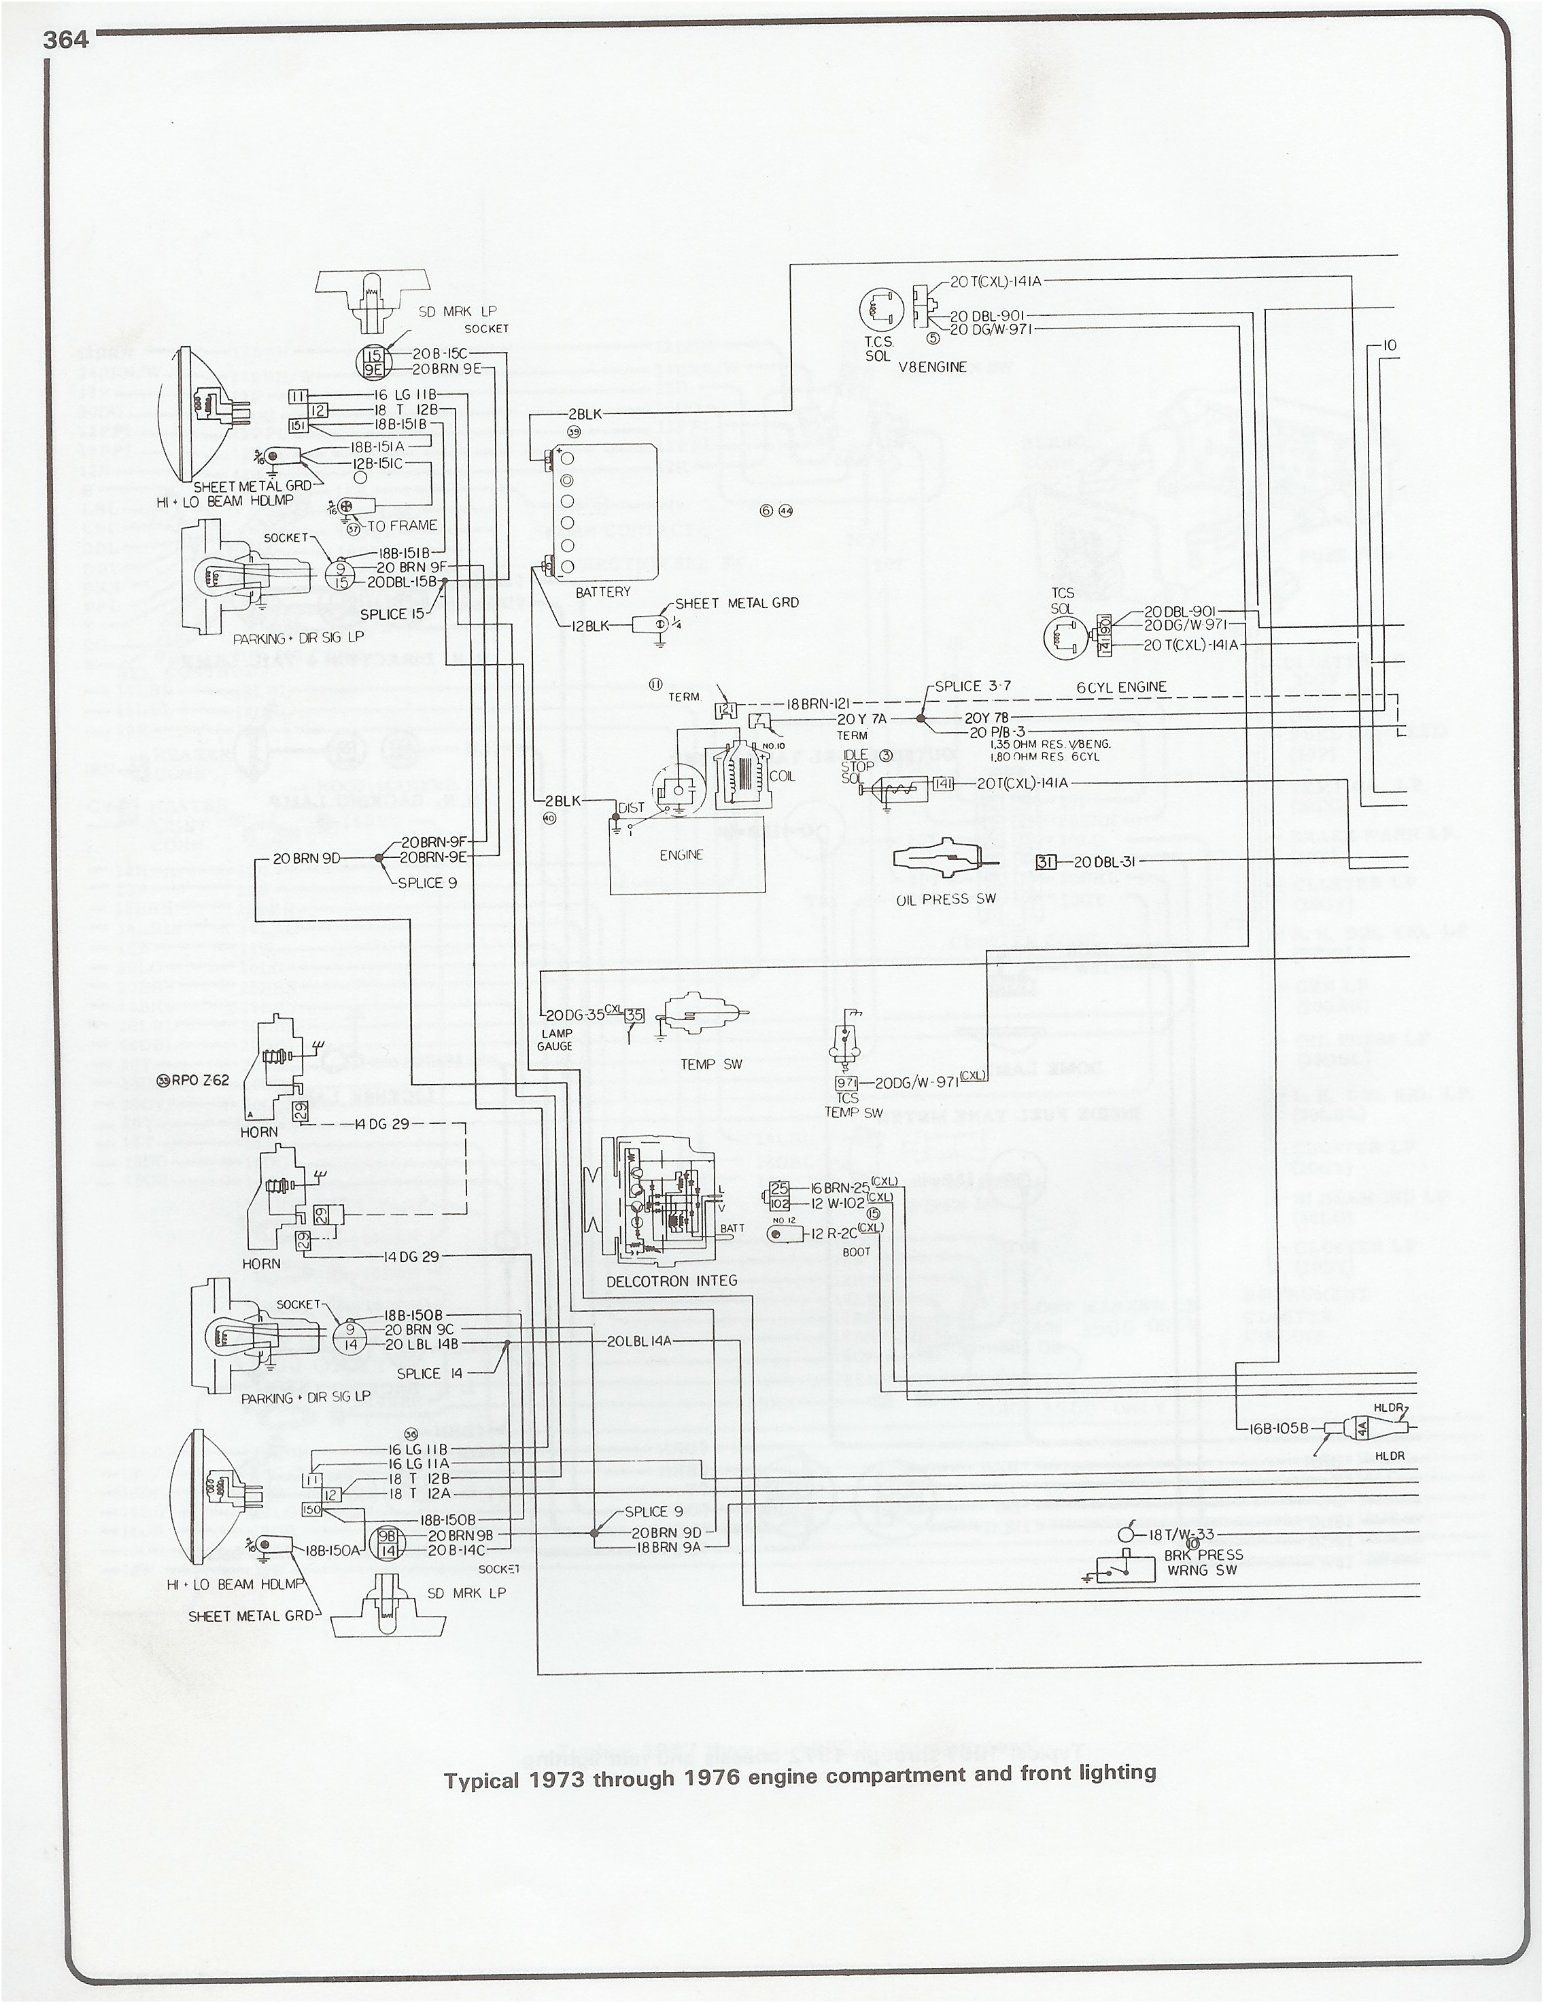 medium resolution of 1975 chevy truck wiring diagram wiring diagram new 1975 c10 pickup wiring diagram data wiring diagram